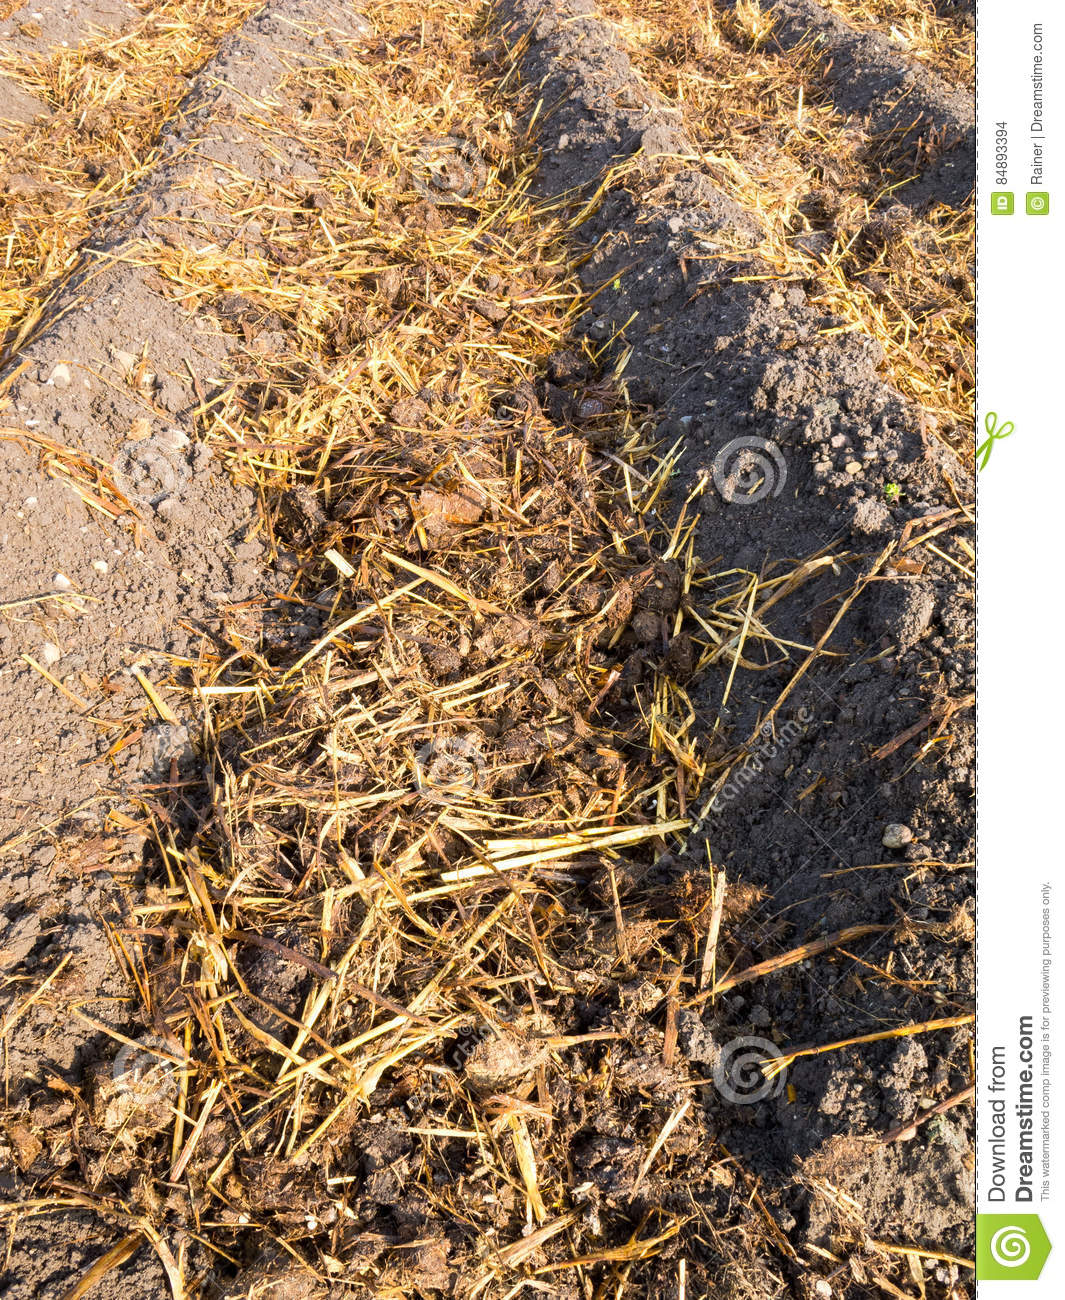 Sheep Dung On Vegetable Garden Soil Stock Photo - Image of patch ...